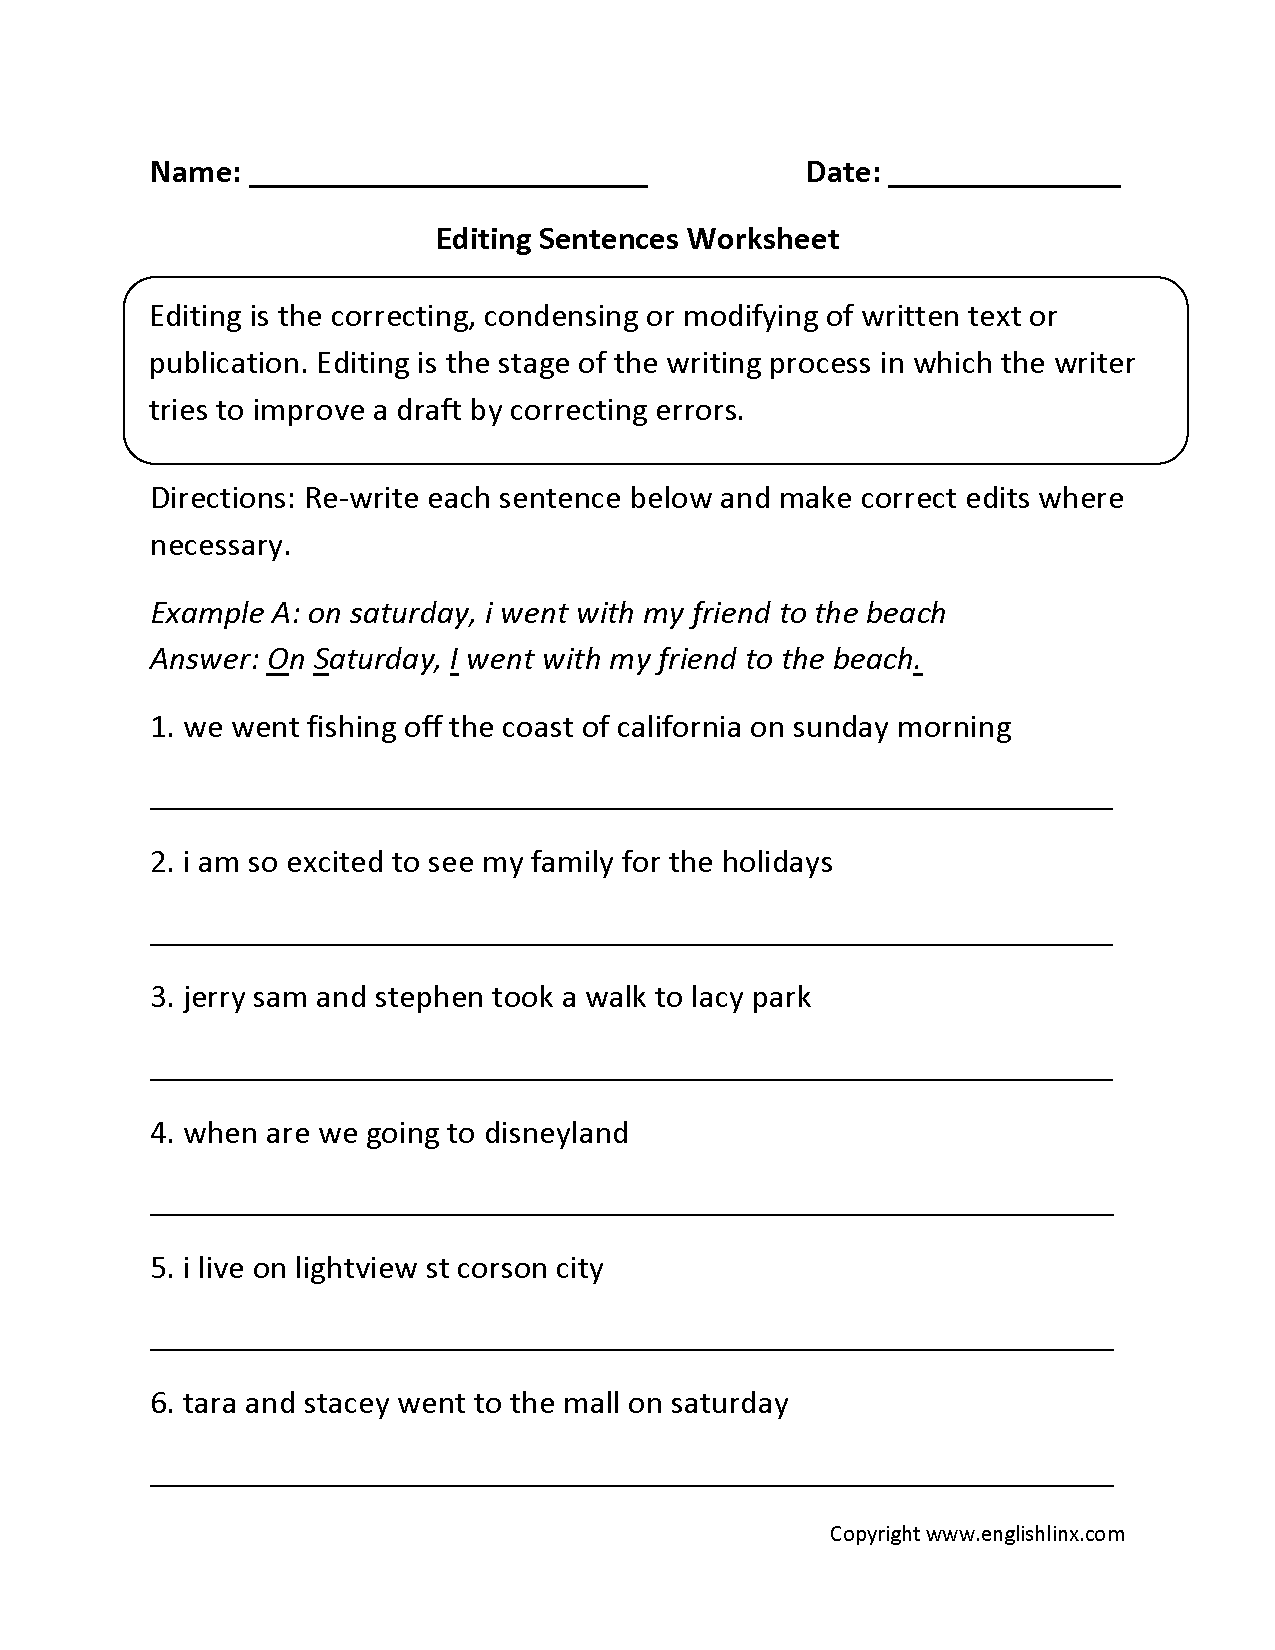 Worksheets Grammar Editing Worksheets writing worksheets editing worksheets